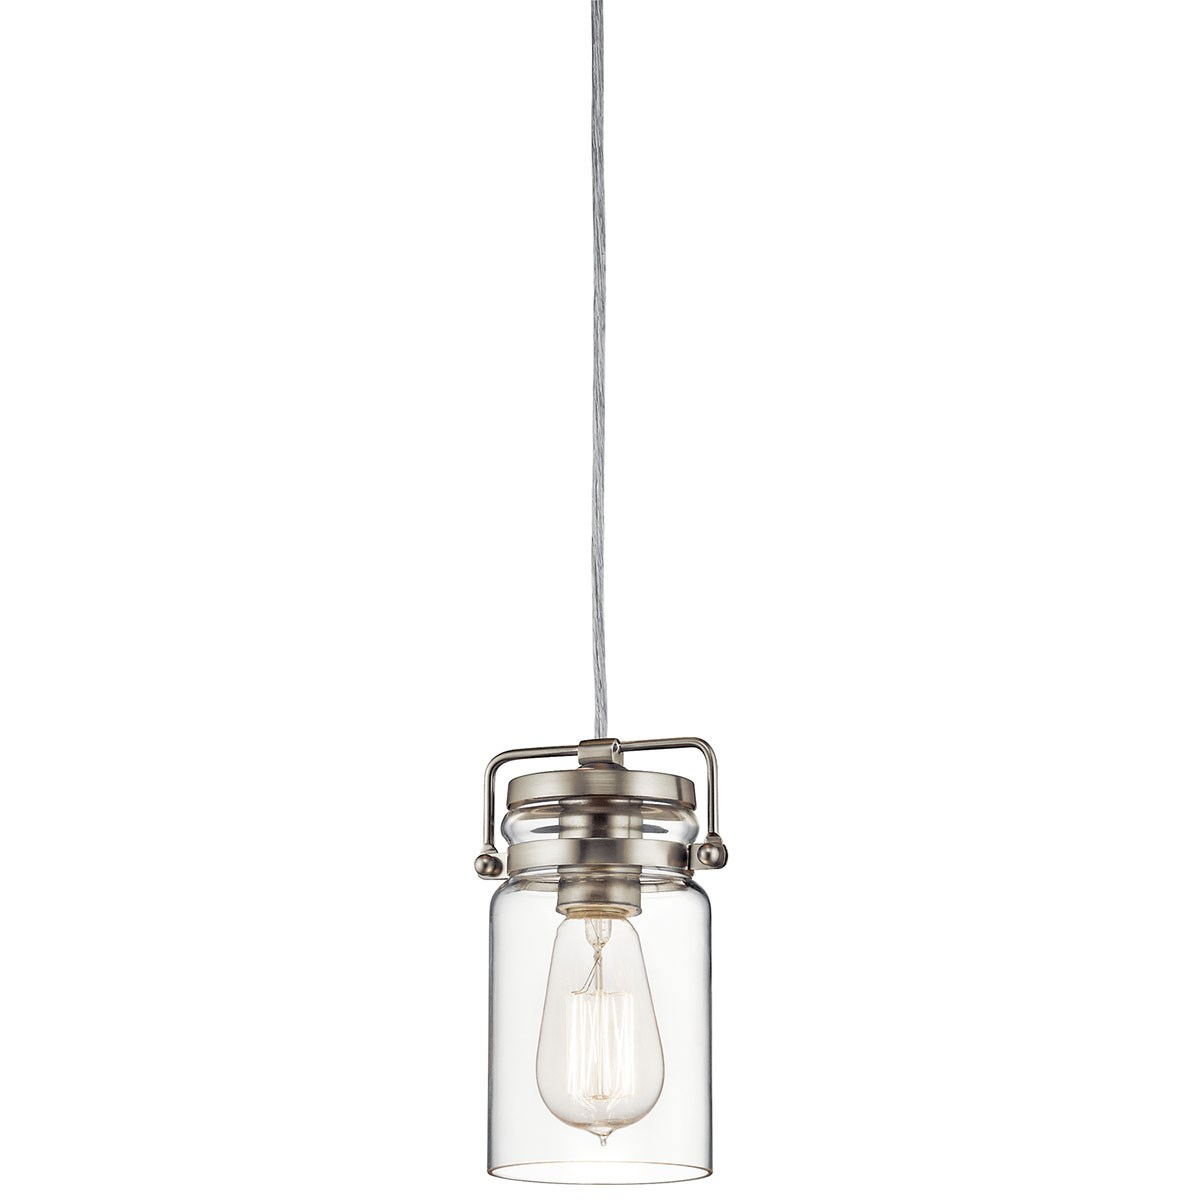 Brinley™ 1 Light Mini Pendant Brushed Nickel